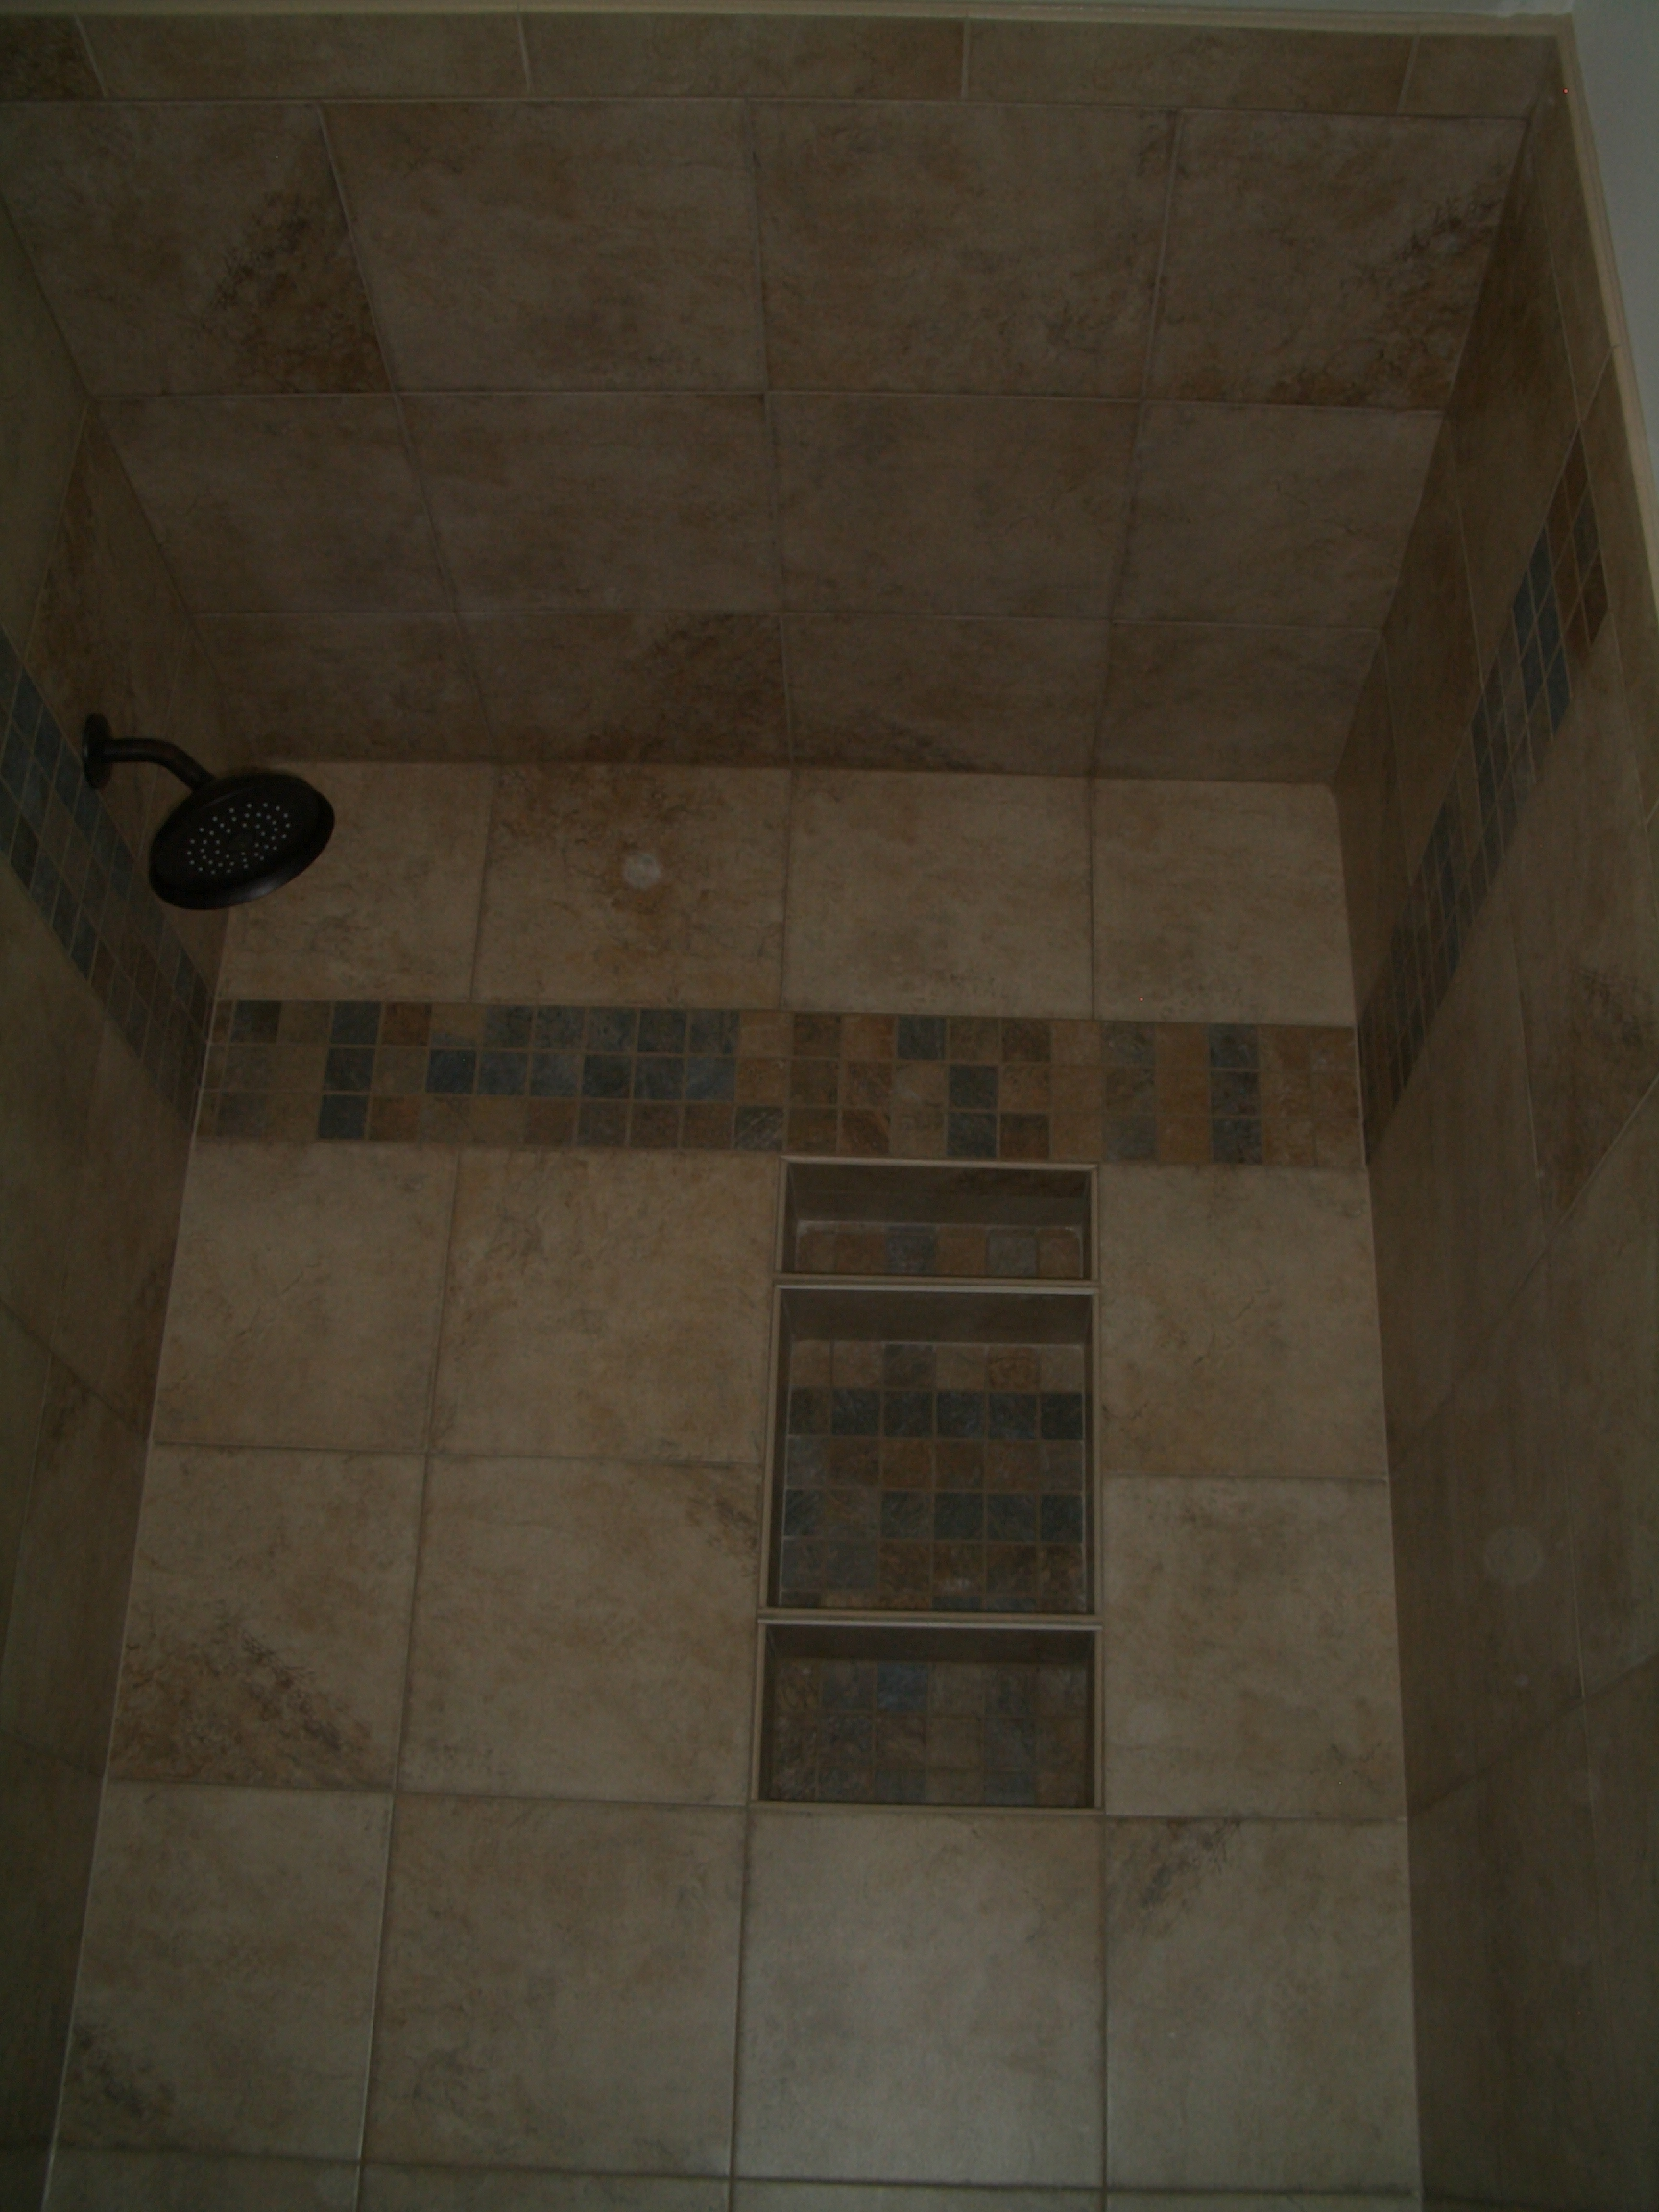 Tiling a shower ceiling ceiling systems How to tile a shower